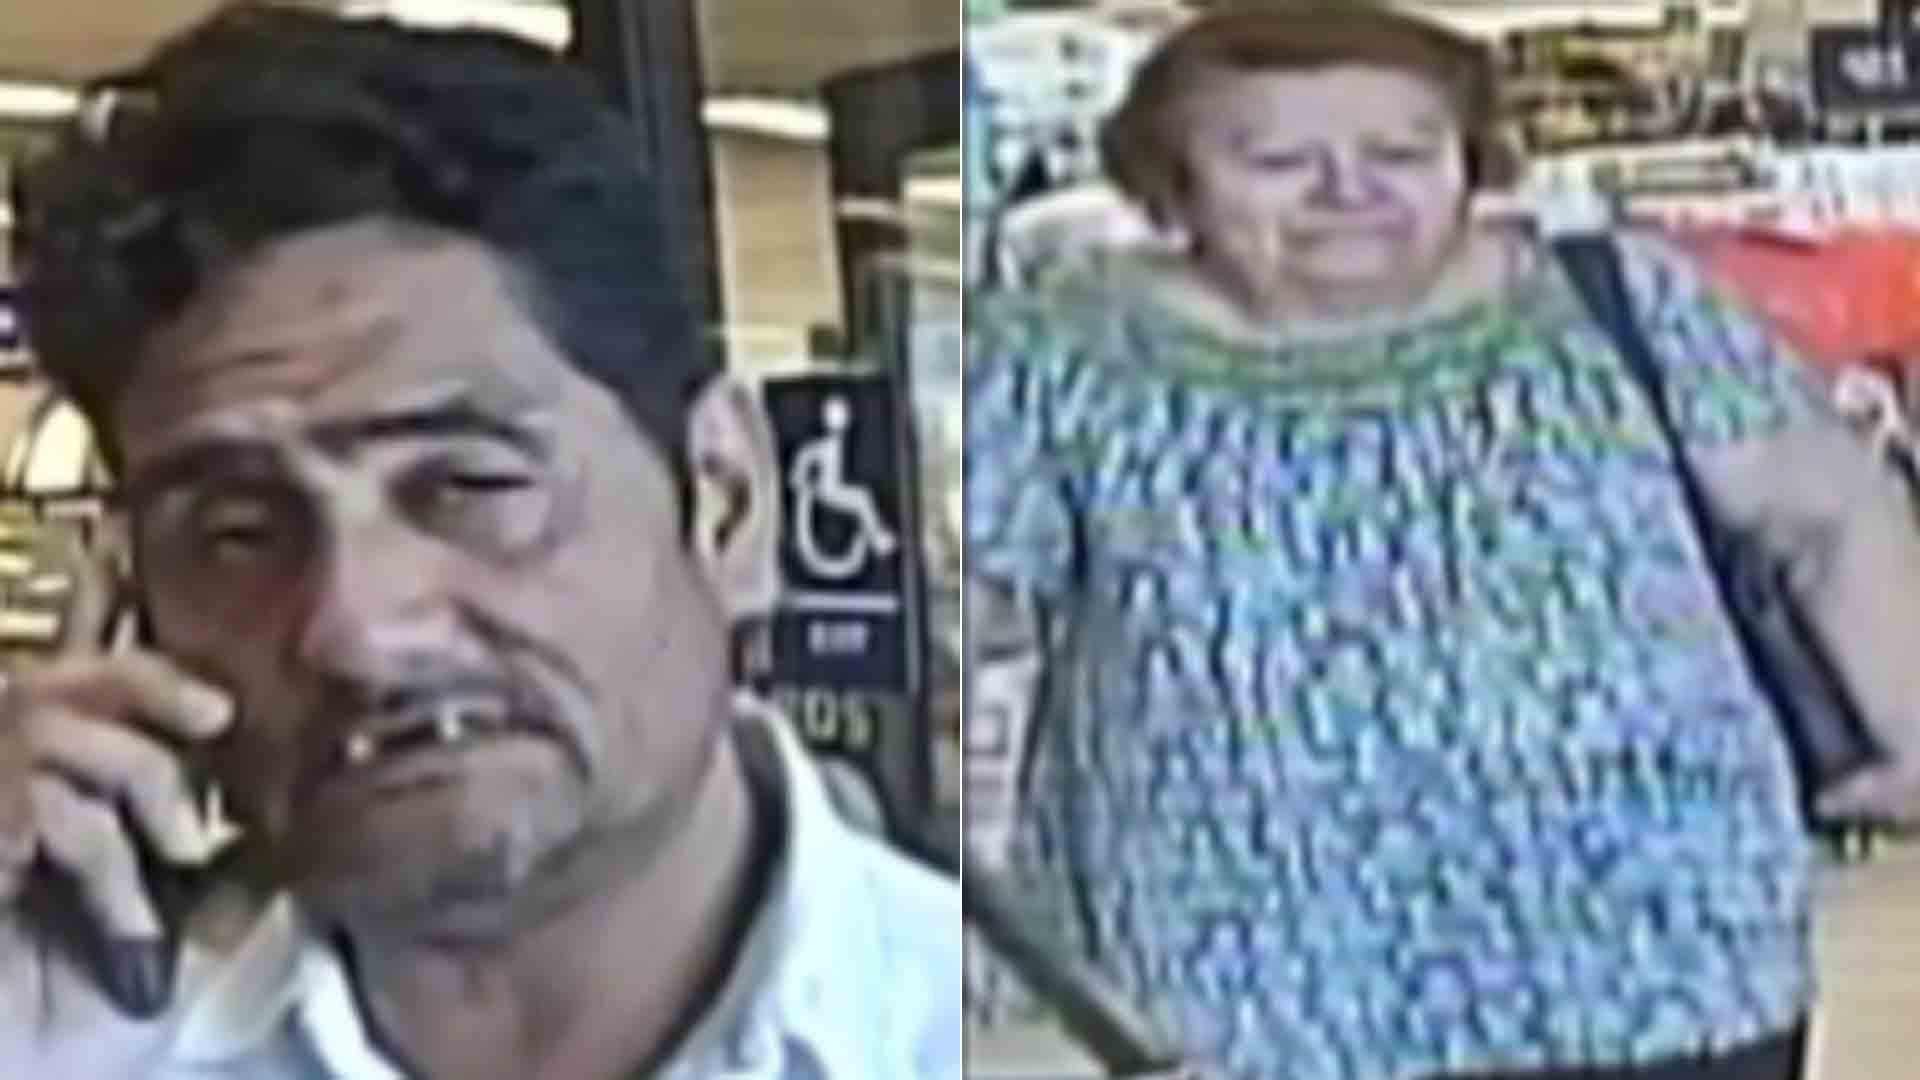 The Los Angeles County Sheriff's Department released these suspect photos on March 20, 2019.